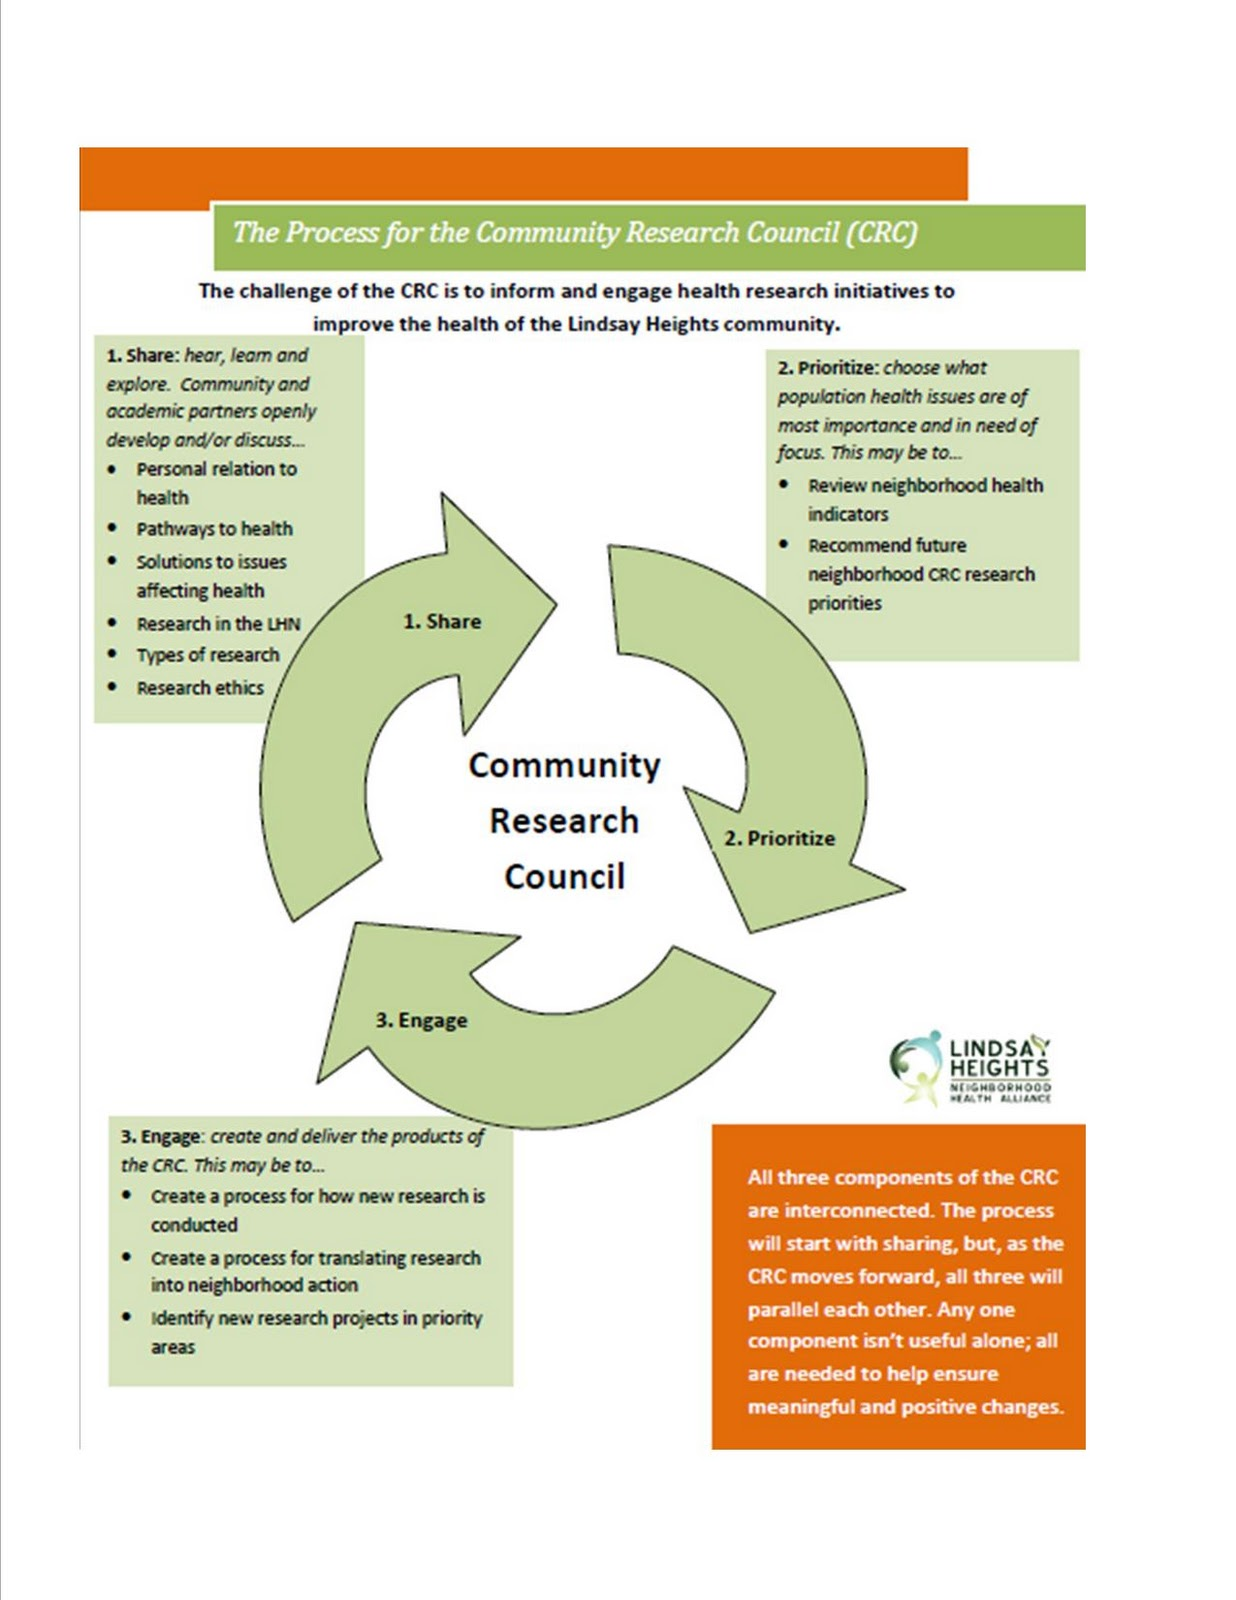 community and population health task i The guide to community preventive services (community guide) is led by the independent task force on community preventive services and is supported by cdc within the epidemiology program office's division of prevention research and analytic methods.